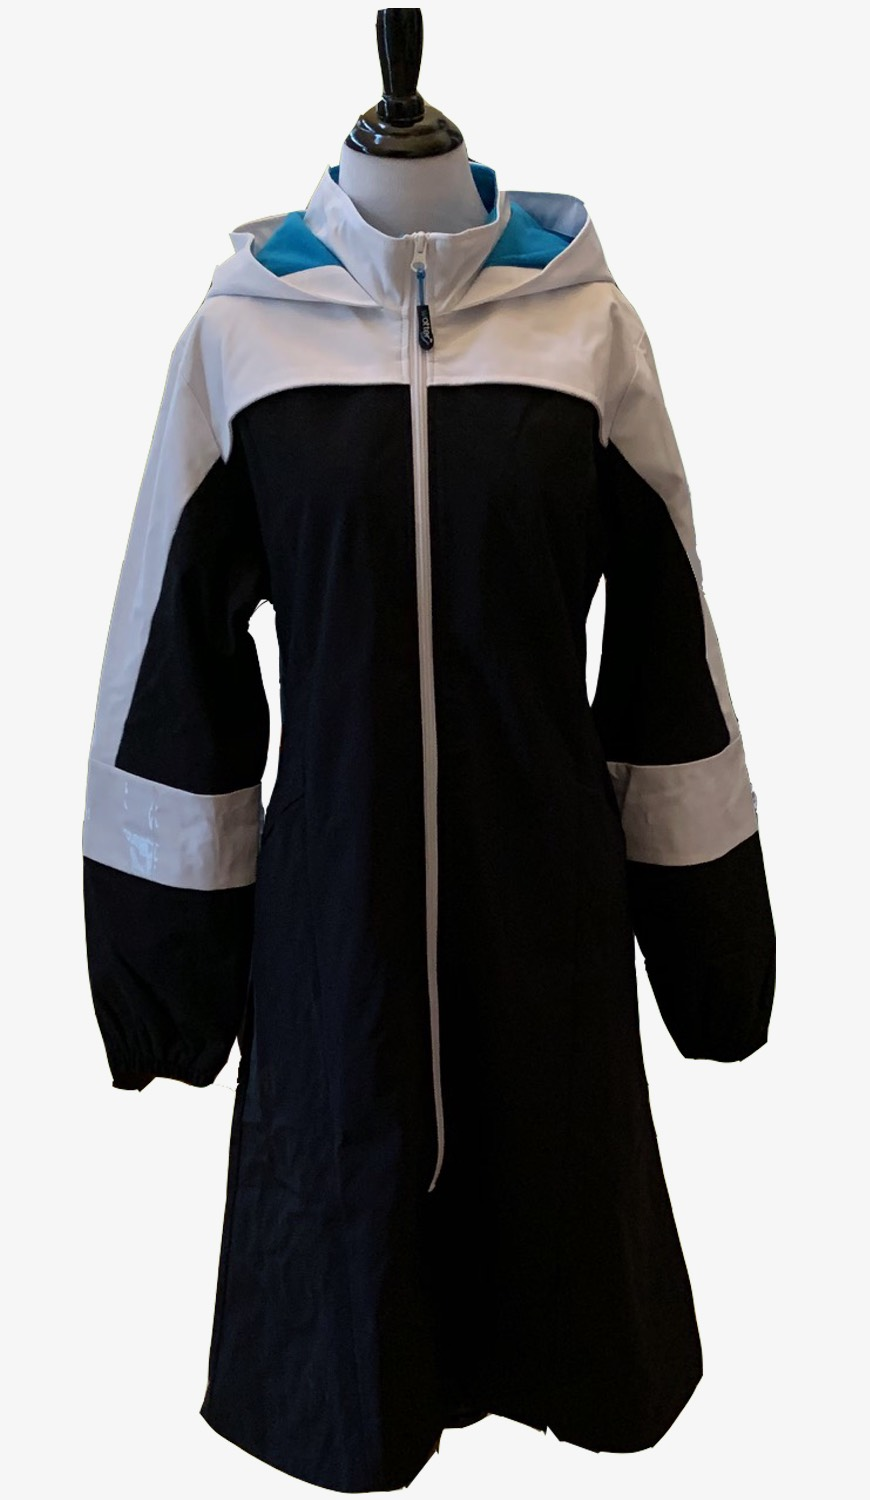 A display of the Wotter Parka